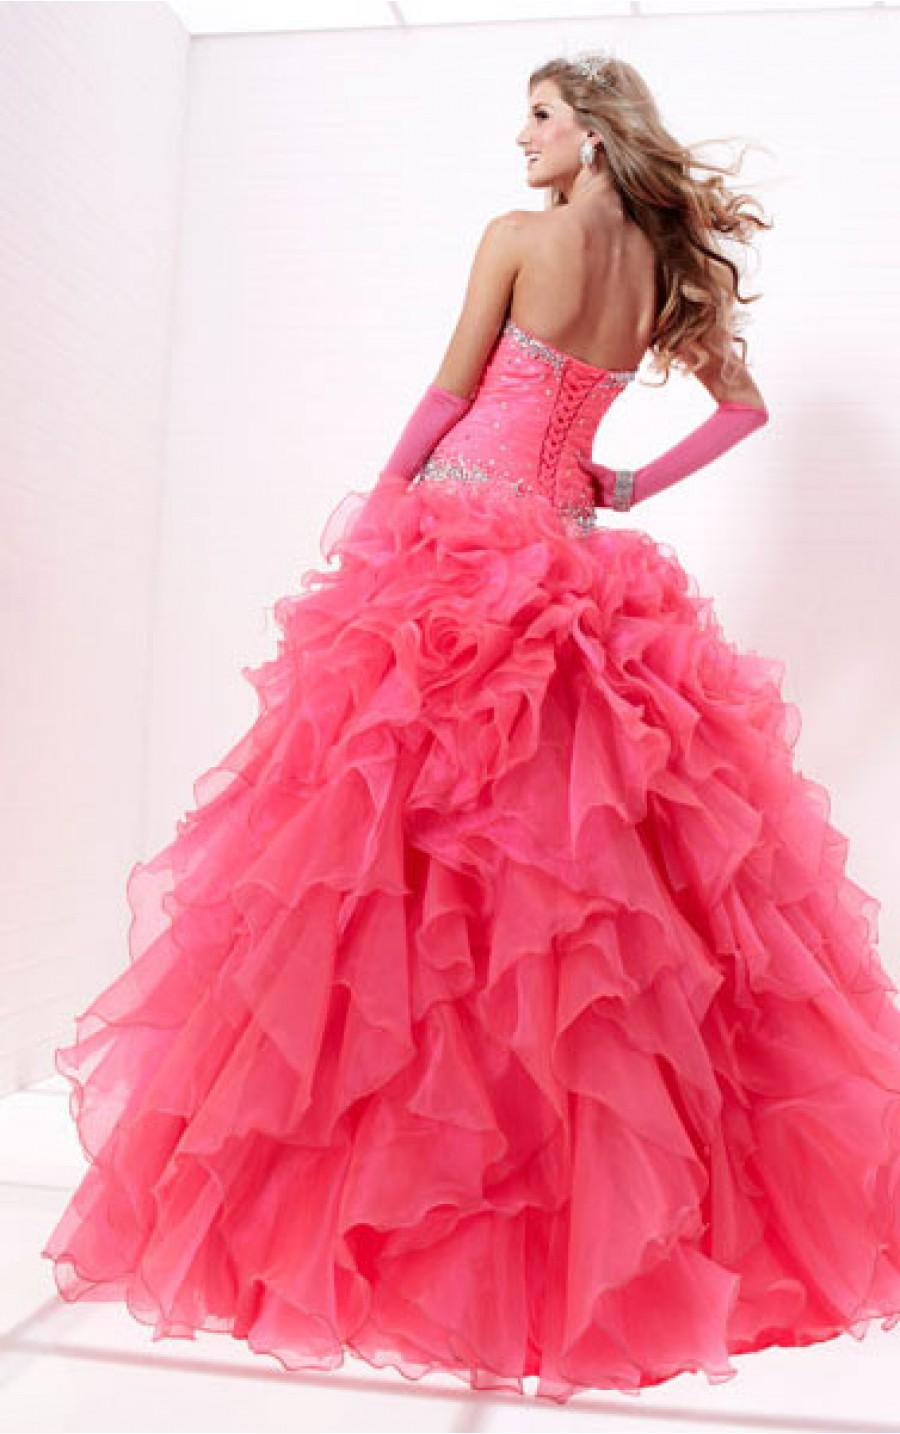 Debs Dresses Online Ireland – Buy Cheap Pink Ball Gown Floor-length Strapless Dress, Discount Dresses For Women Sale